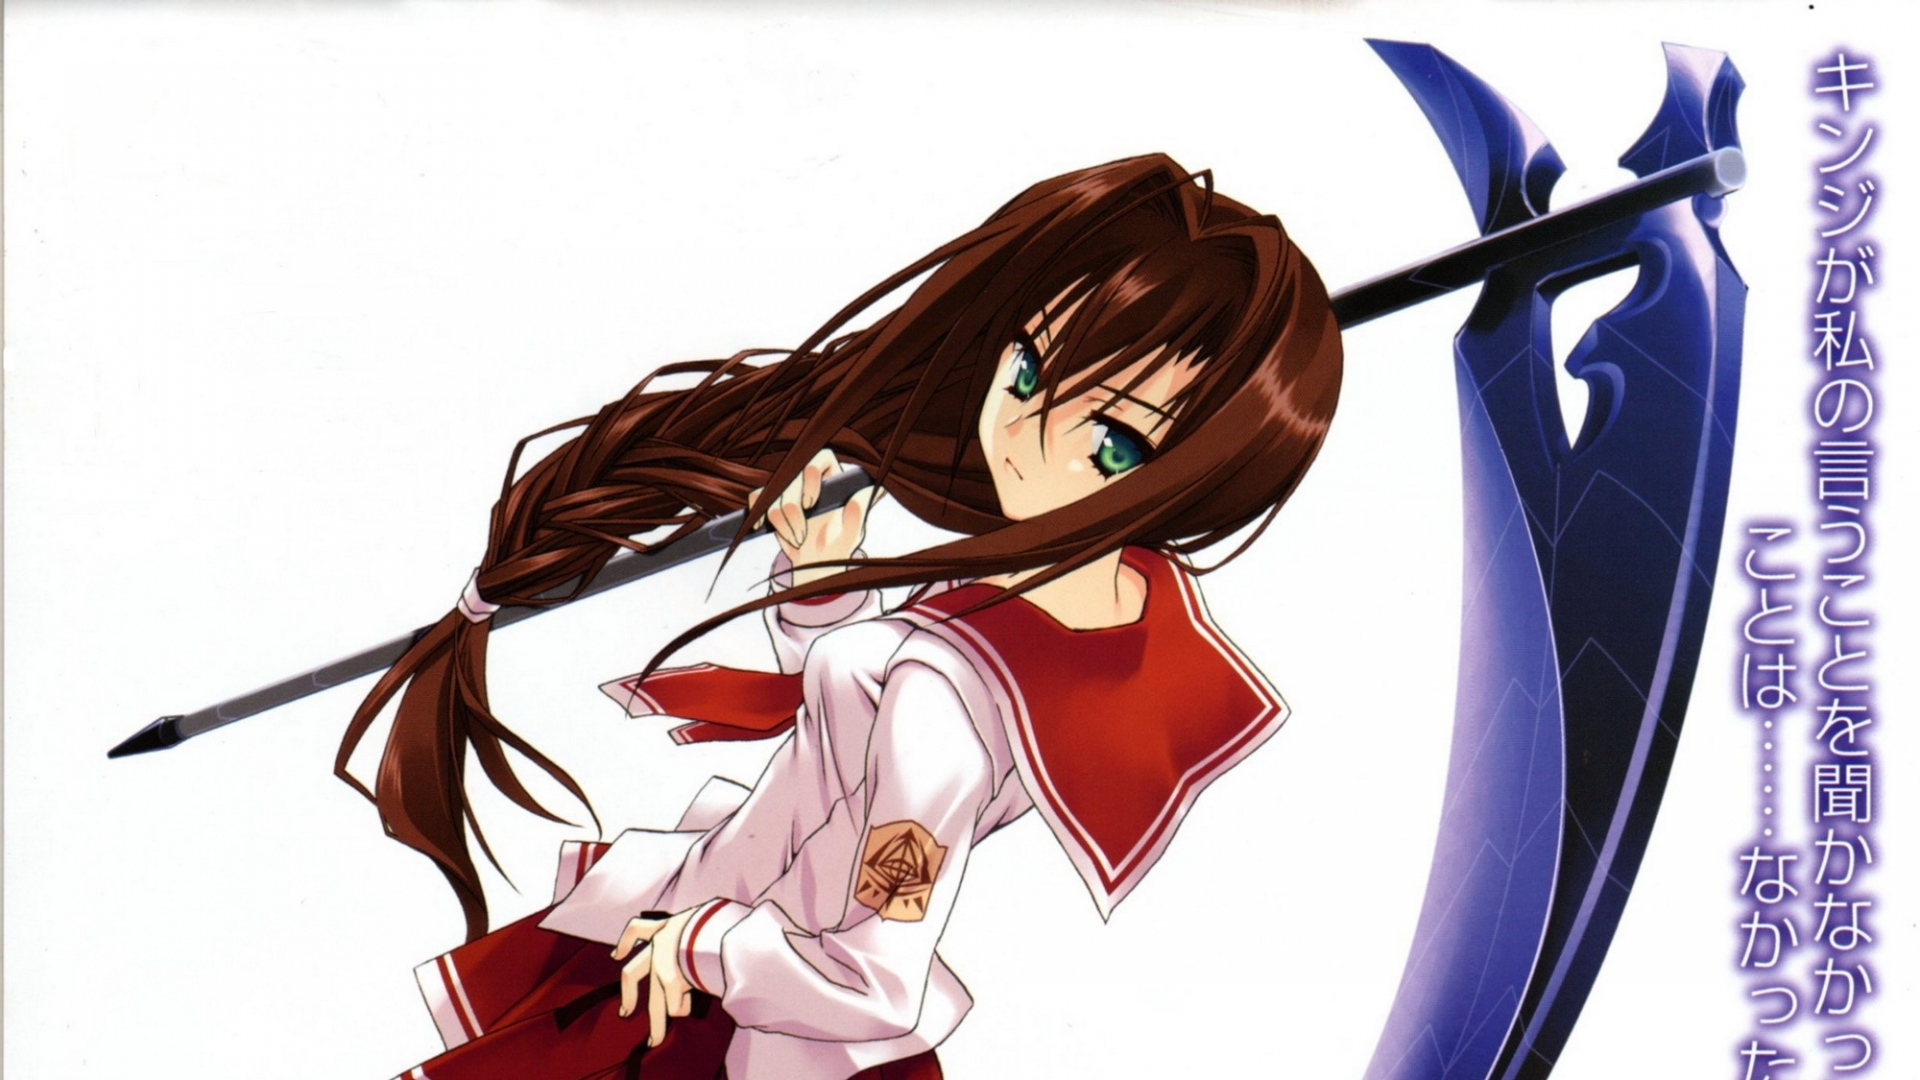 Download Wallpaper 1920x1080 Hidan No Aria Girl Brunette Scythe